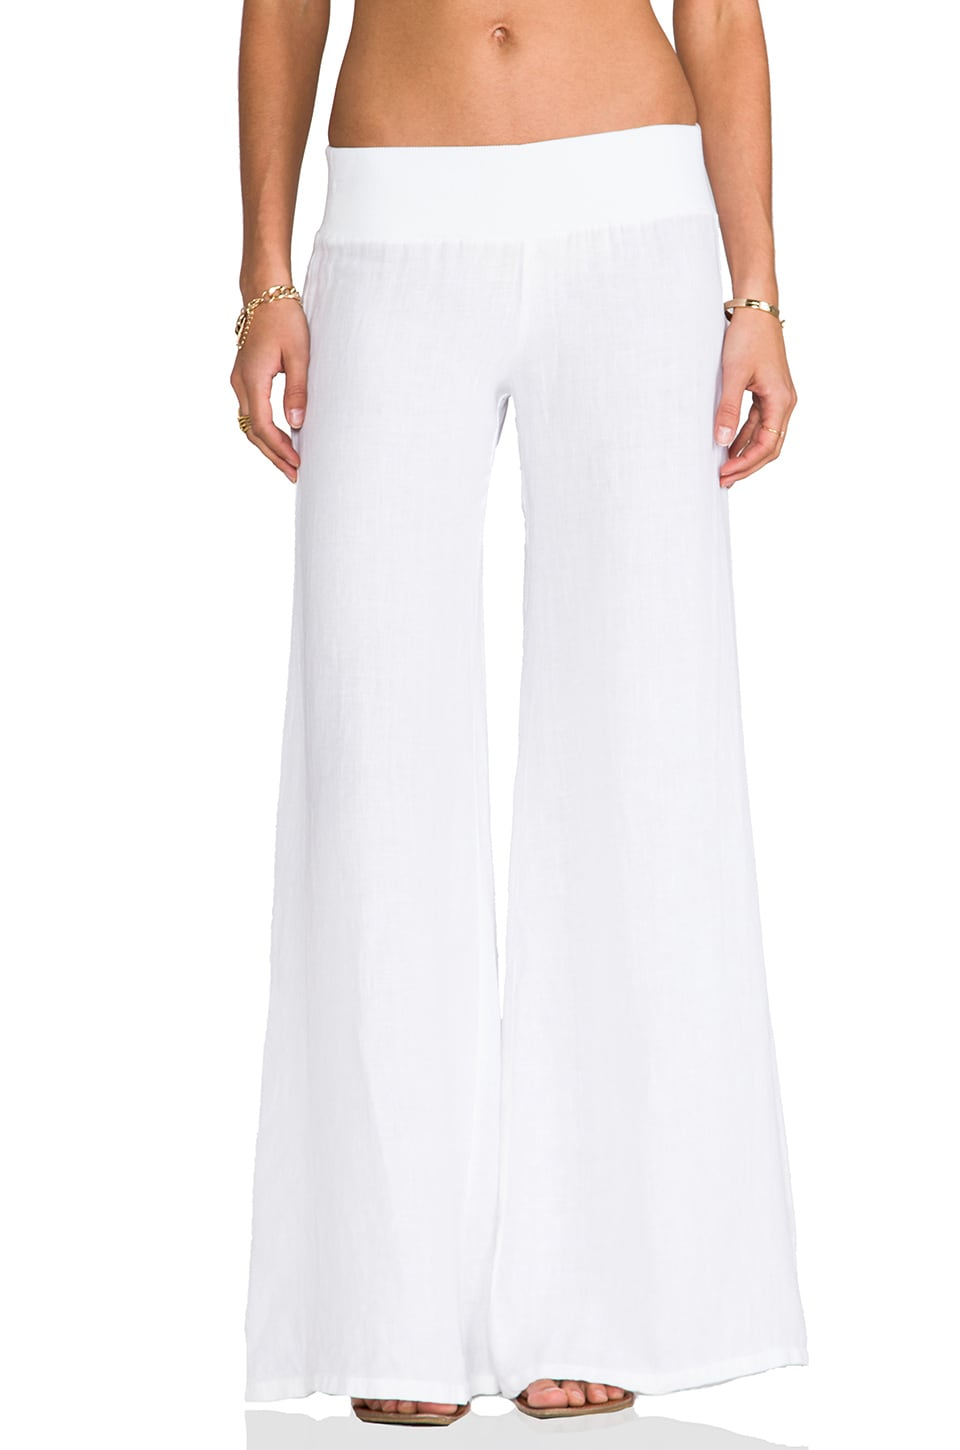 Enza Costa Linen Wide Leg Pant in White | REVOLVE